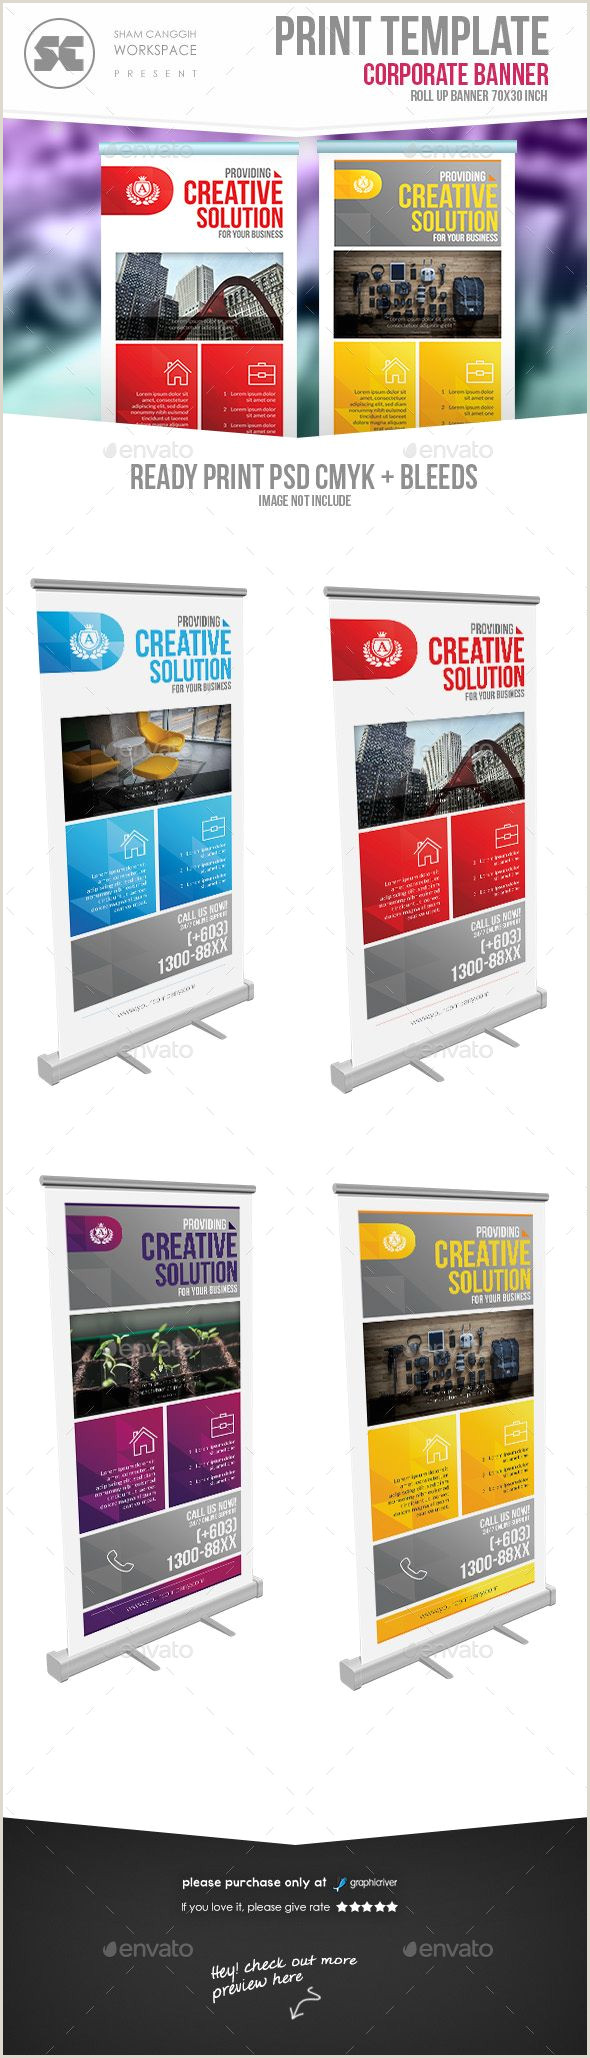 Popup Display Banner Corporate Roll Up Banner